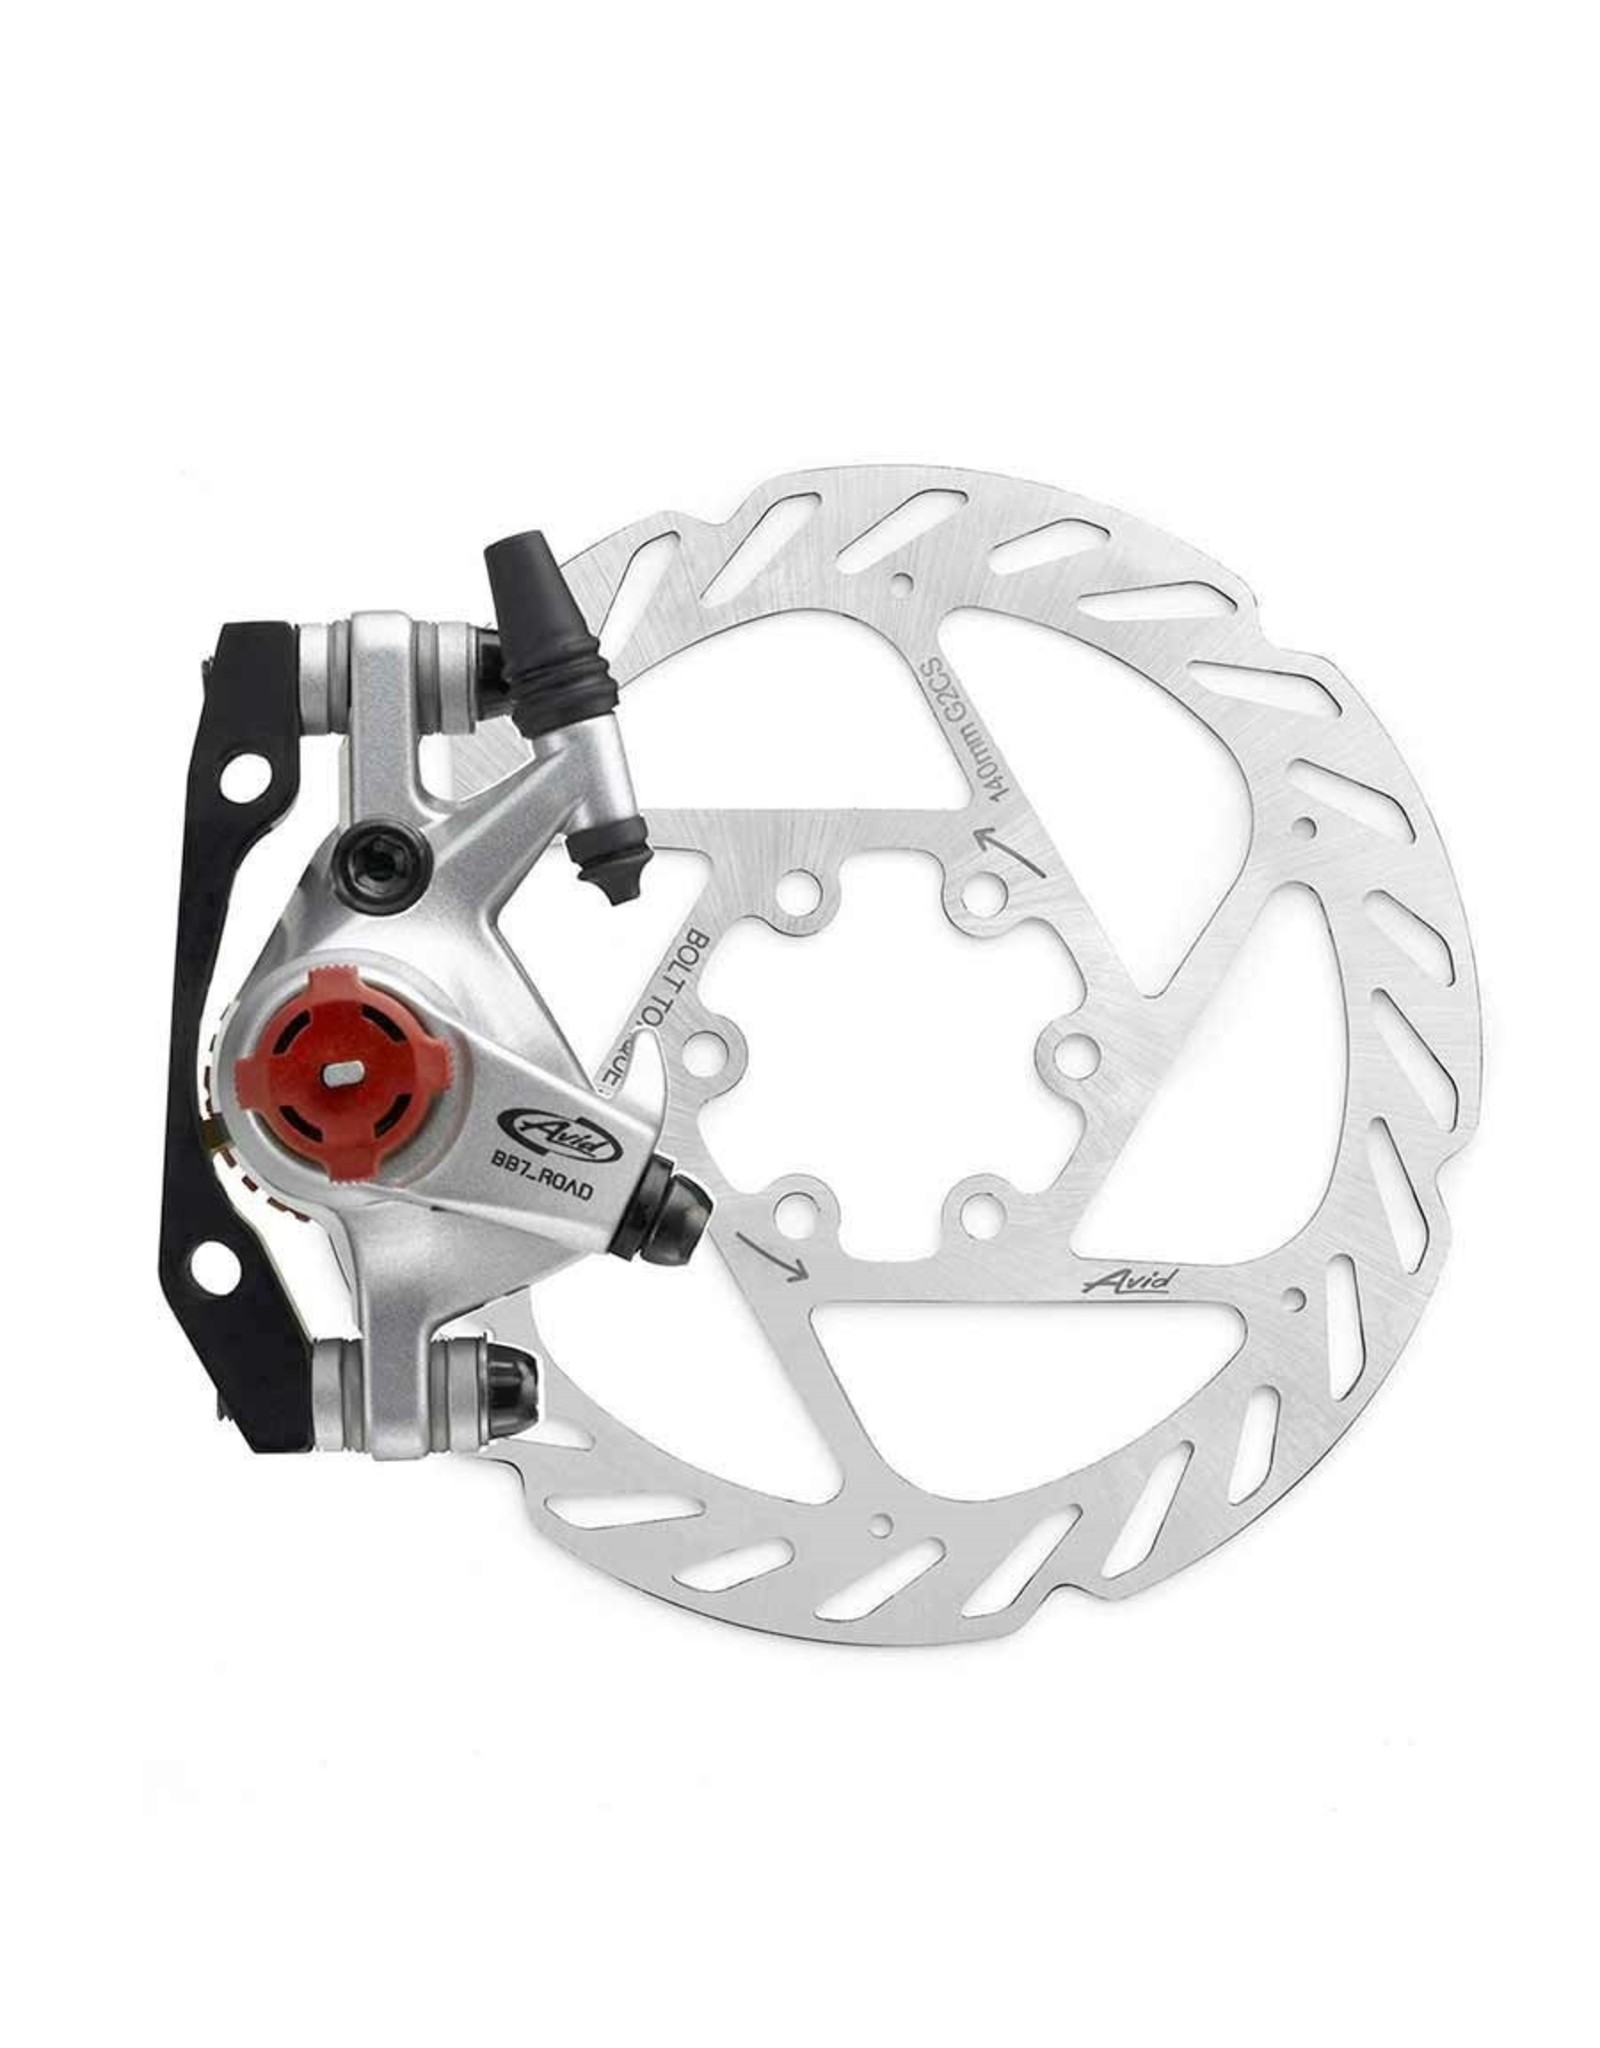 Avid BB7 Route 160mm mechanical disc brake - front or rear